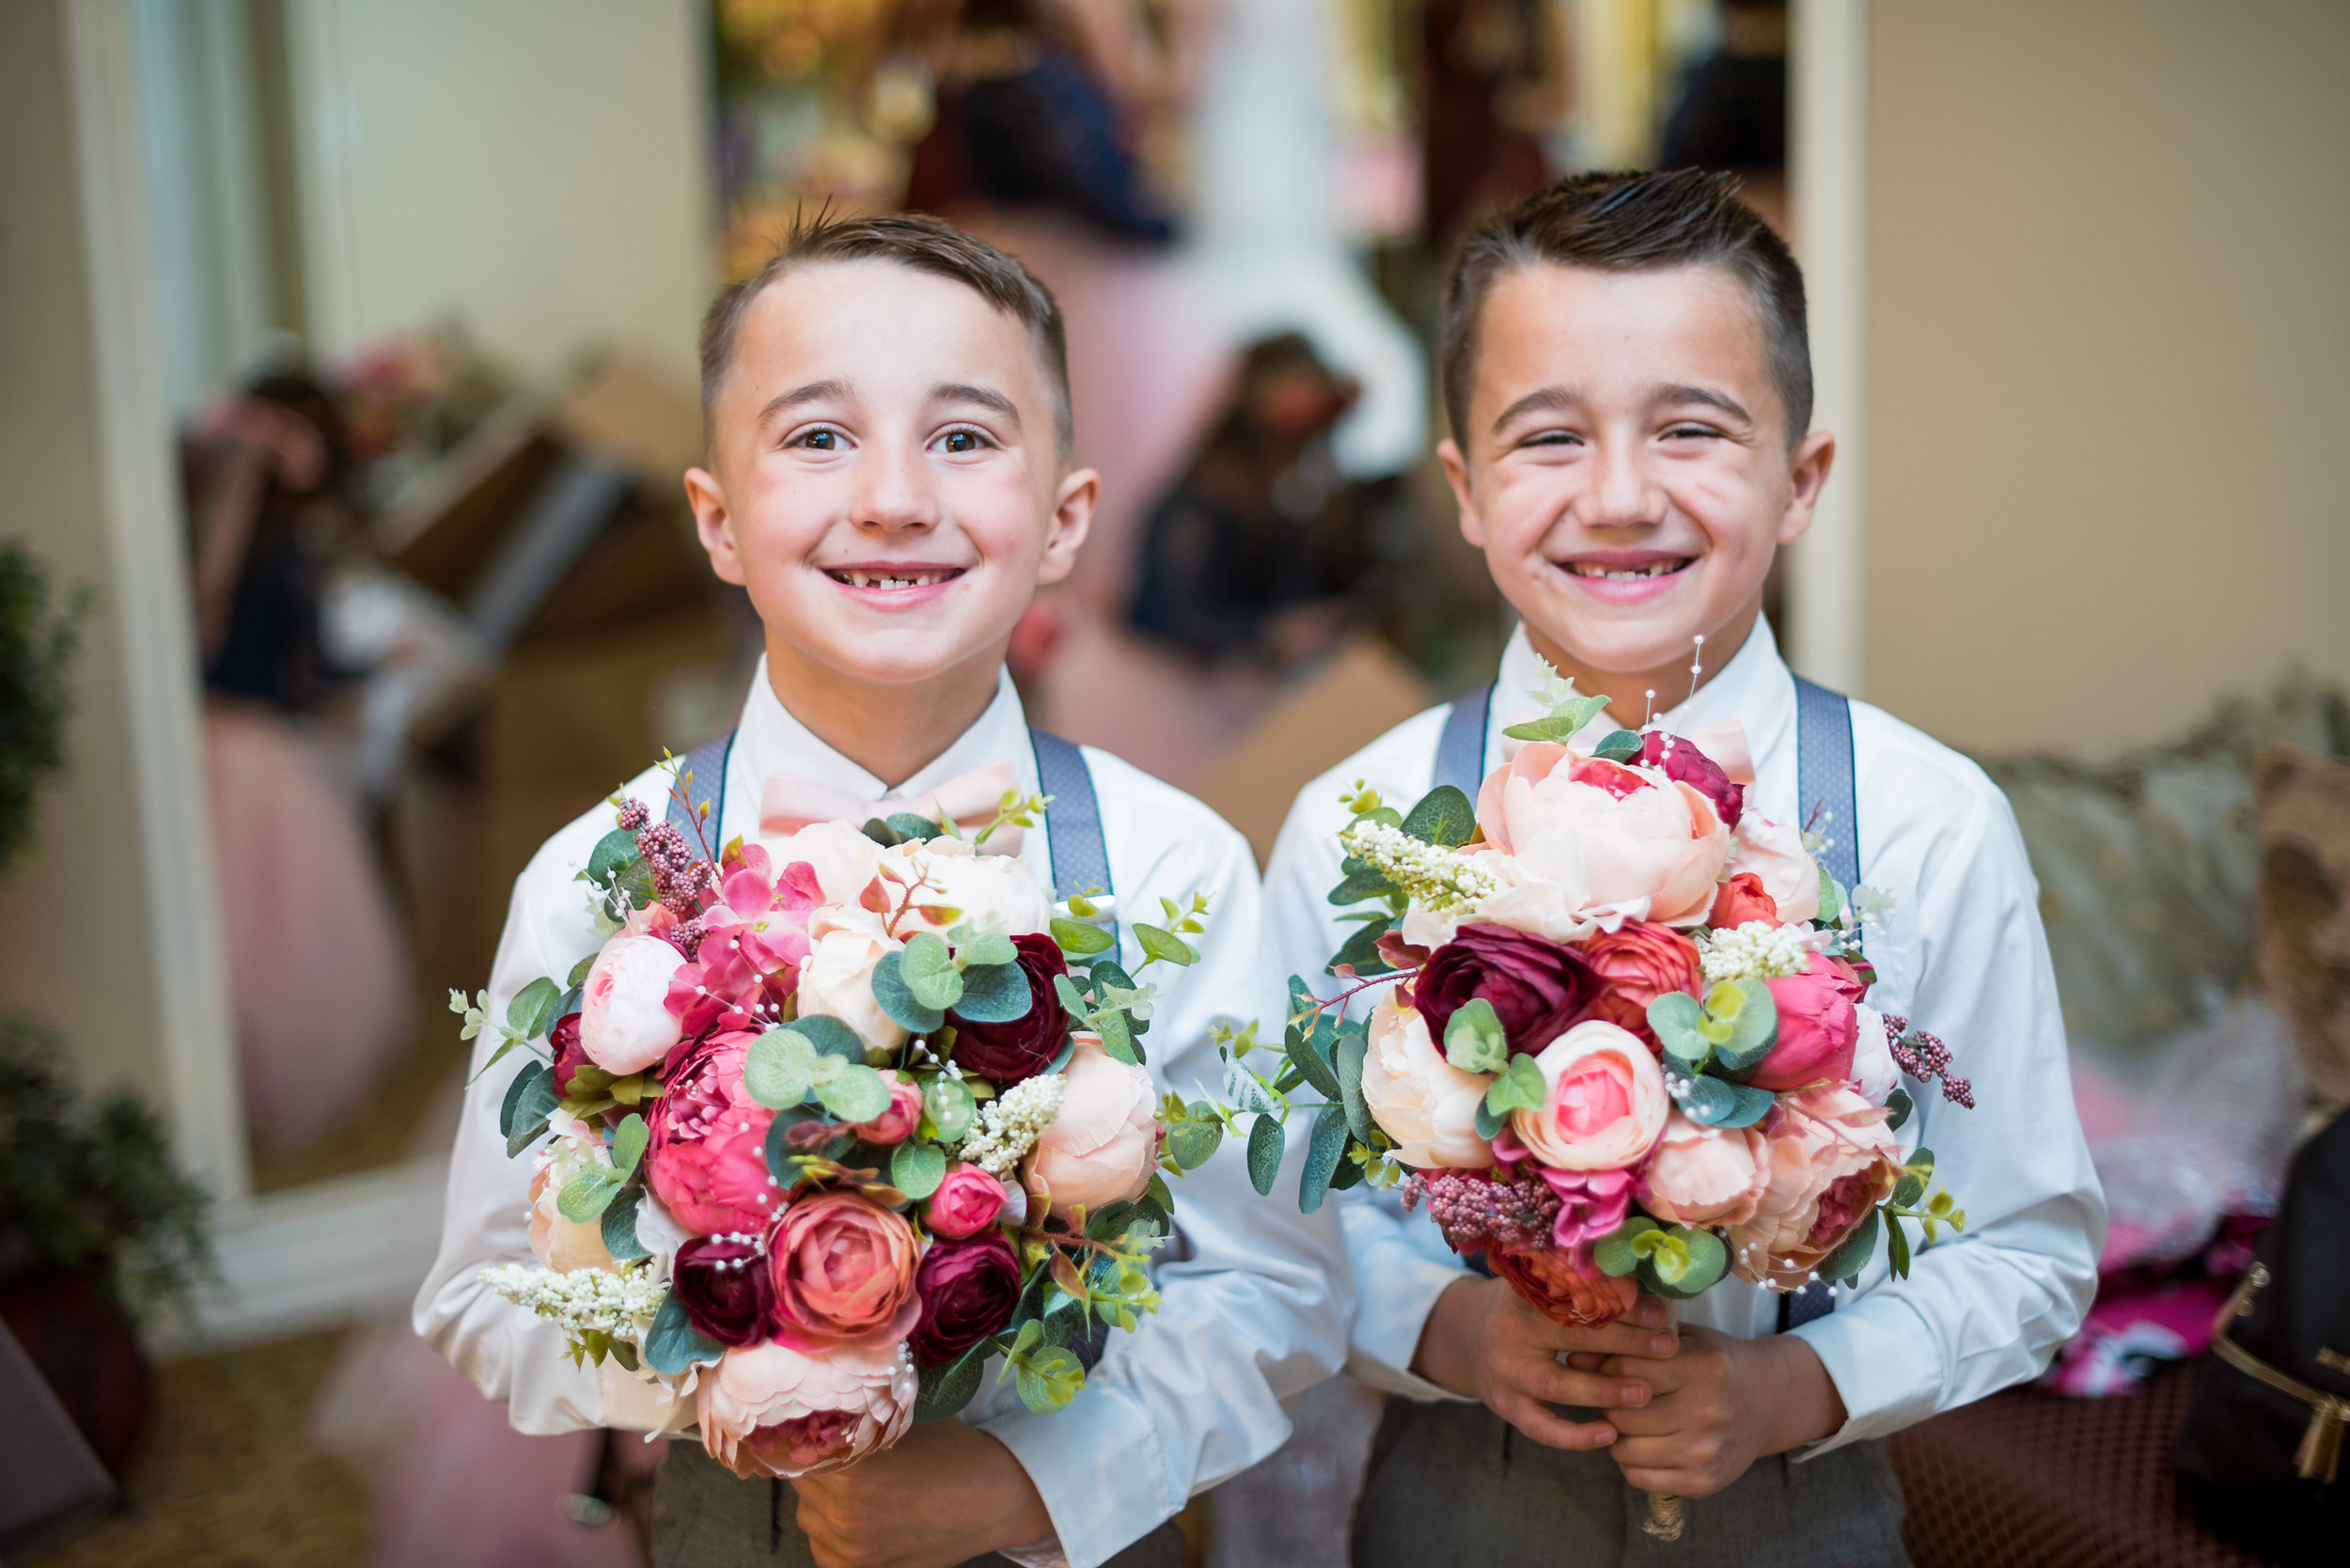 Ring Bearers at the ready to help the bridesmaids with anything they may need! Including holding their flowers for them.